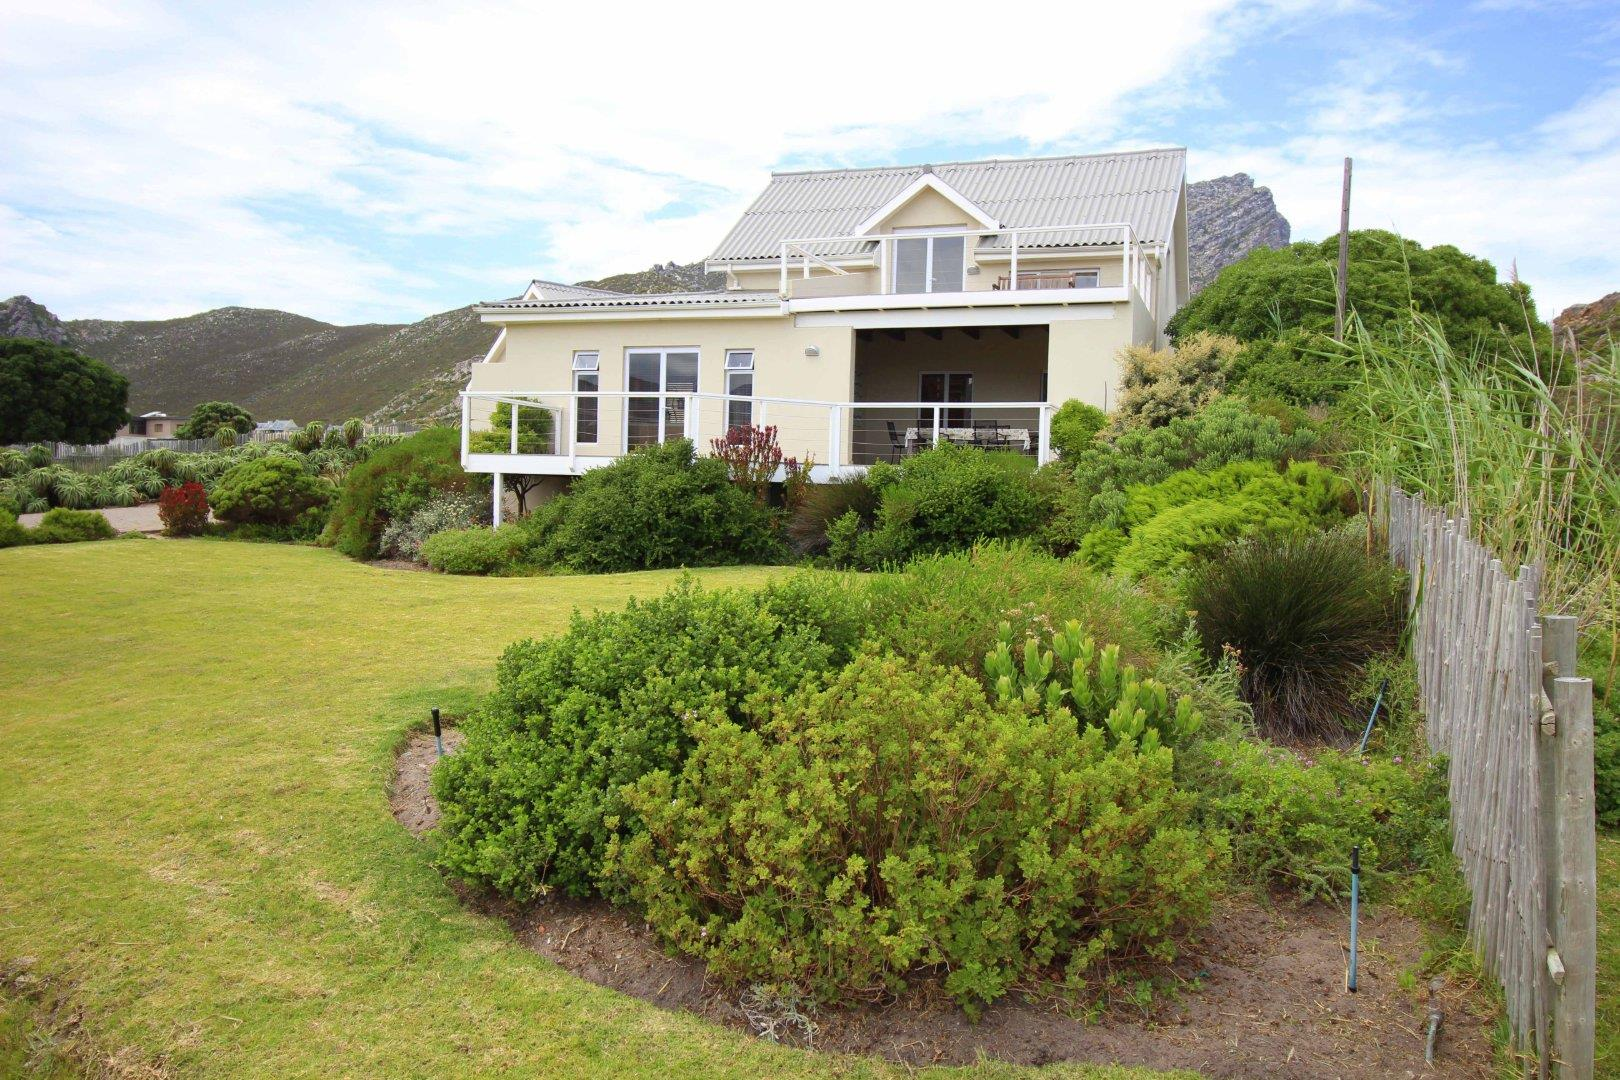 3 Bedroom House For Sale in Pringle Bay